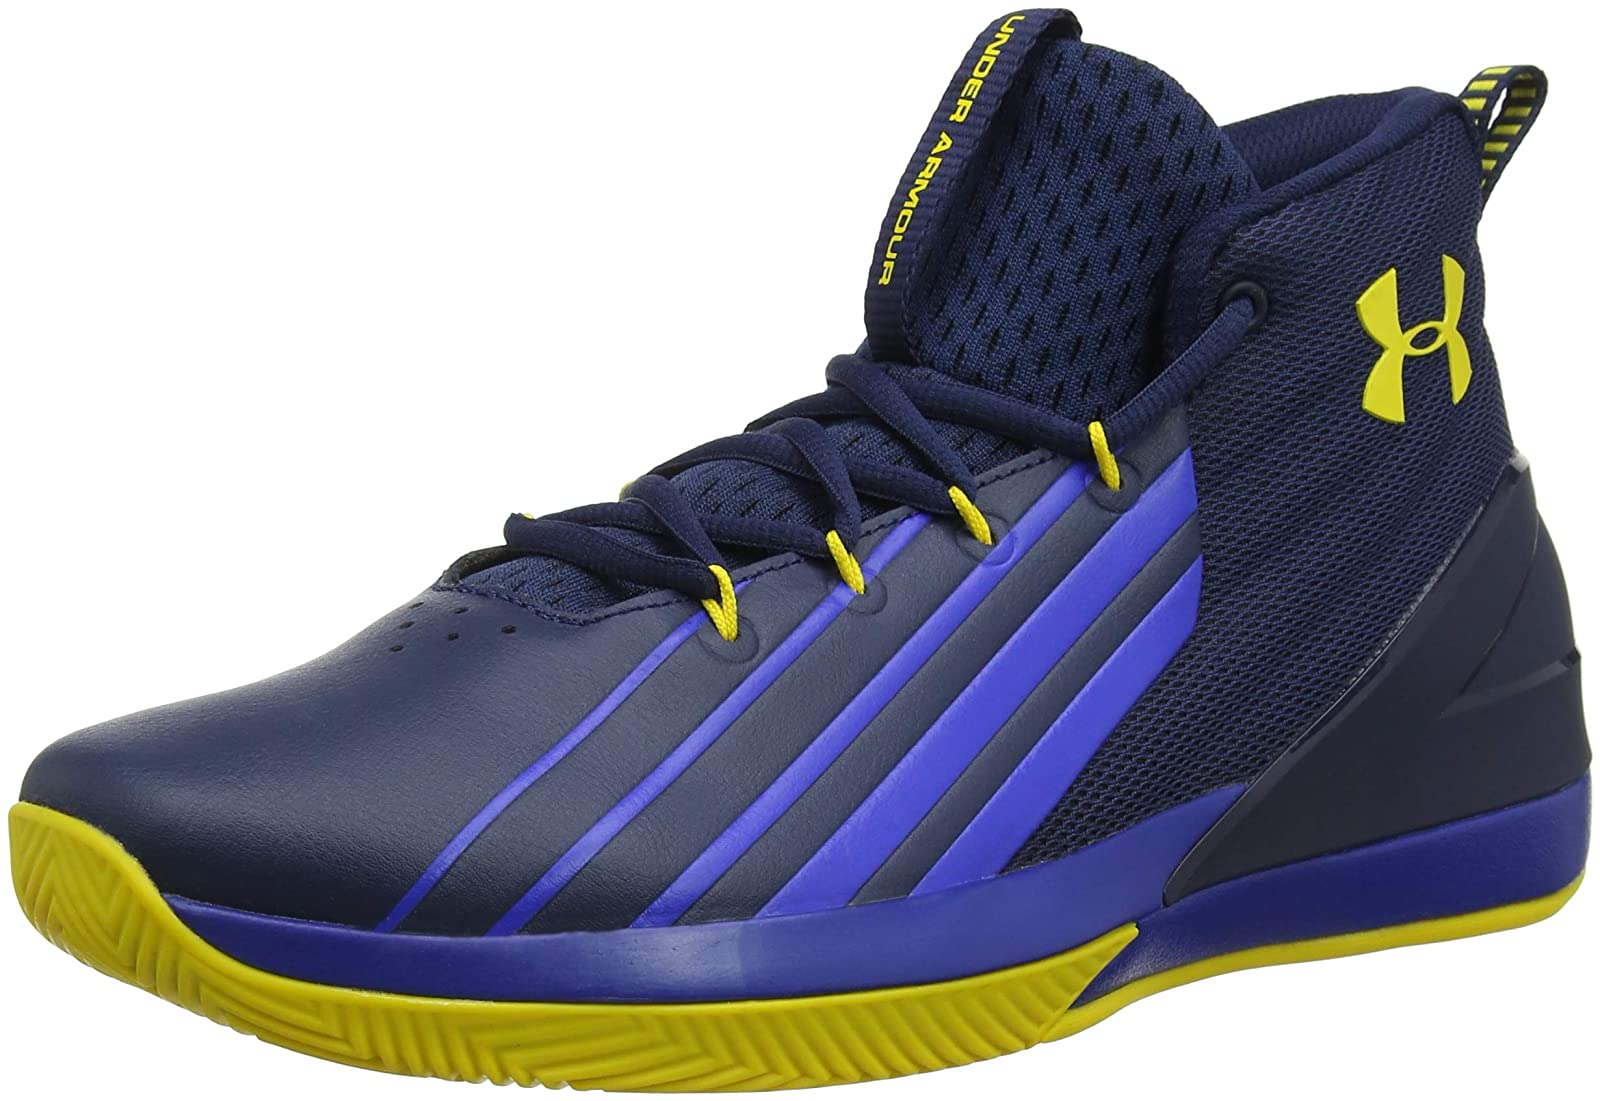 Under Armour Men's Launch Basketball Shoe 3020622 Academy (400)/Royal - 1